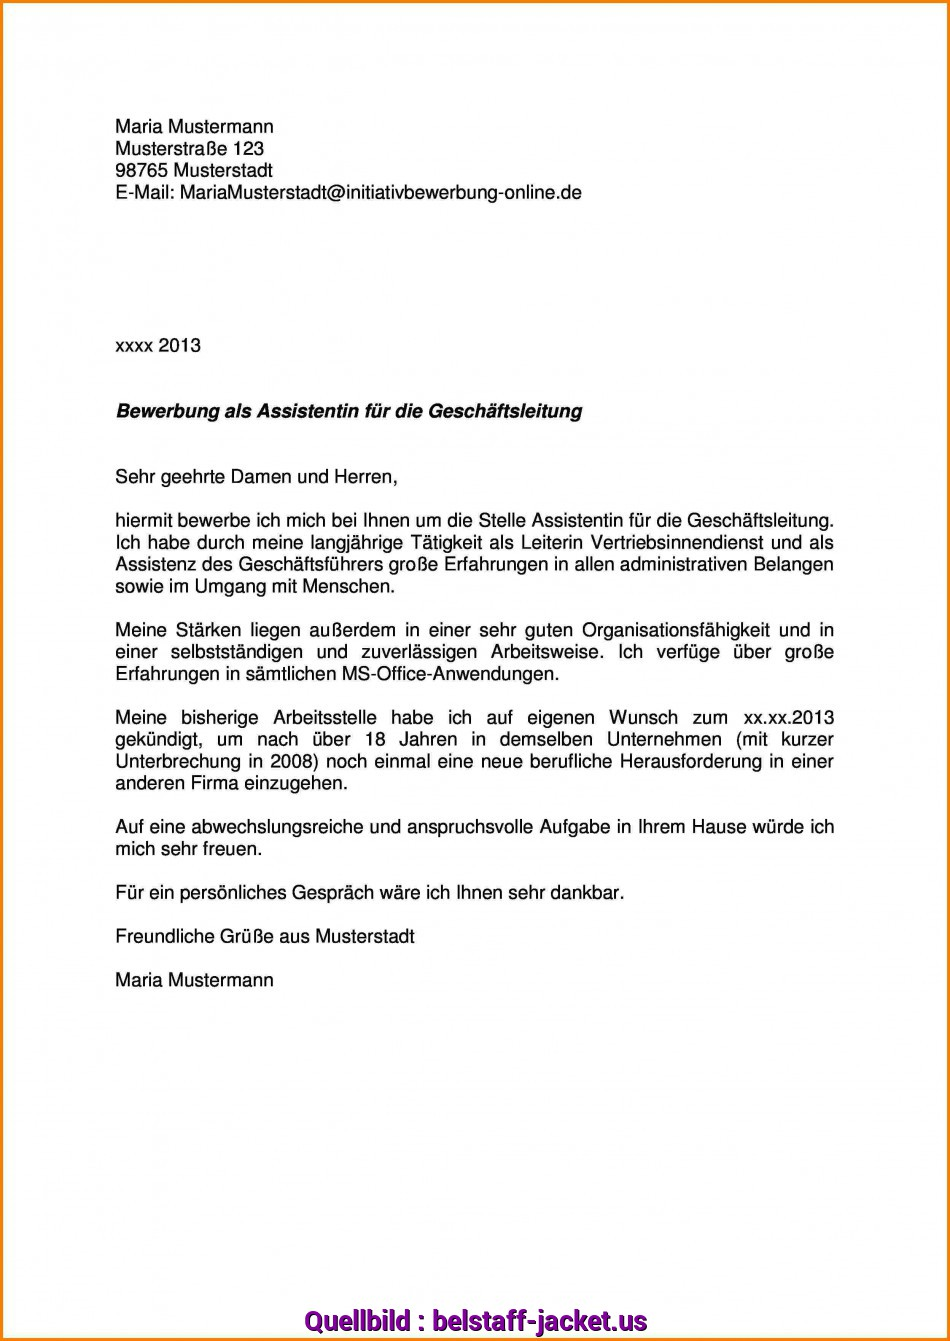 Kreativ Initiativbewerbung Porsche 12 Anschreiben Initiativbewerbung Muster Analysis Templated Analysis Templated